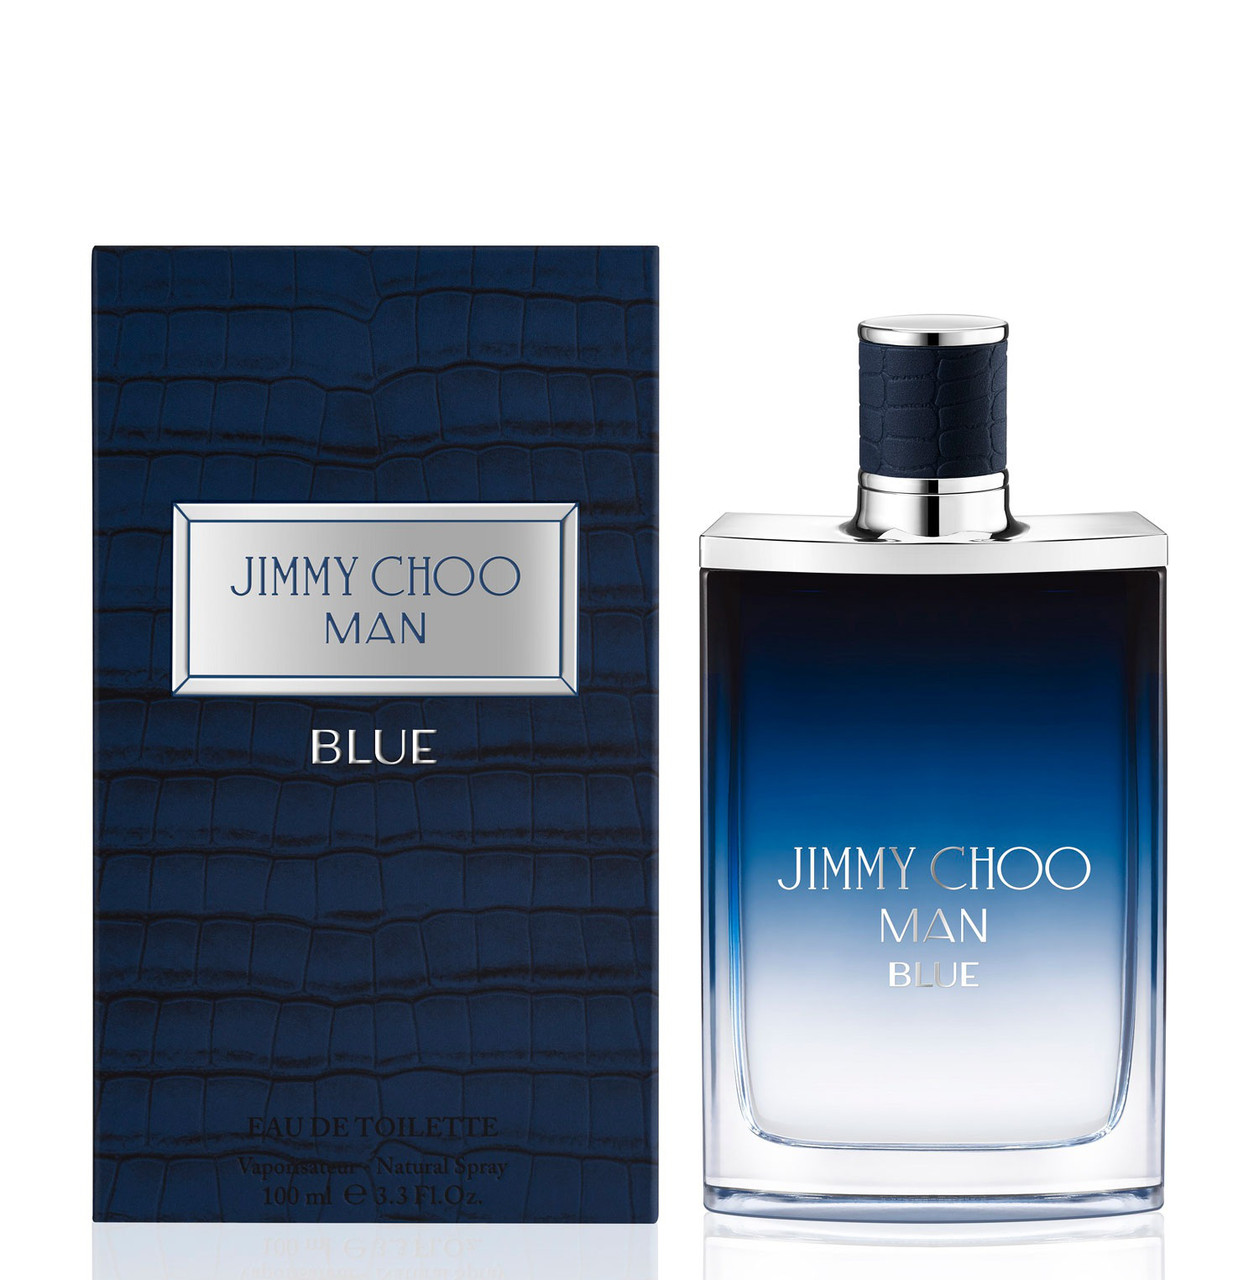 Jimmy Choo Man Blue 100ml (tester)